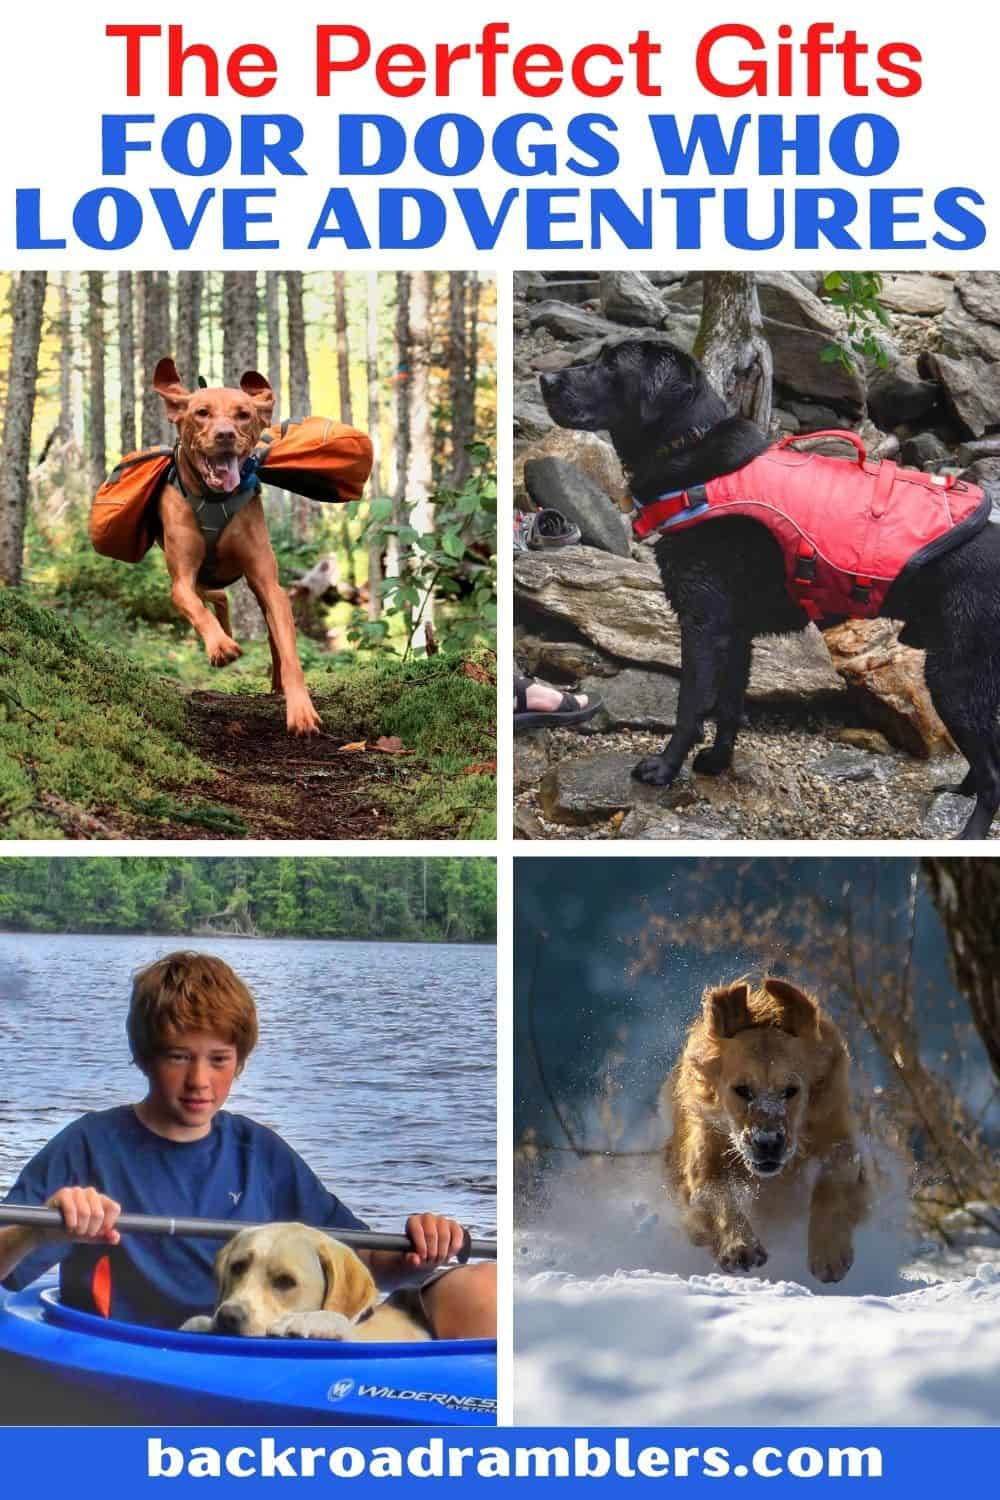 A collage of photos featuring adventurous dogs. Text overlay: The Perfect Gifts for Dogs who Love Adventures